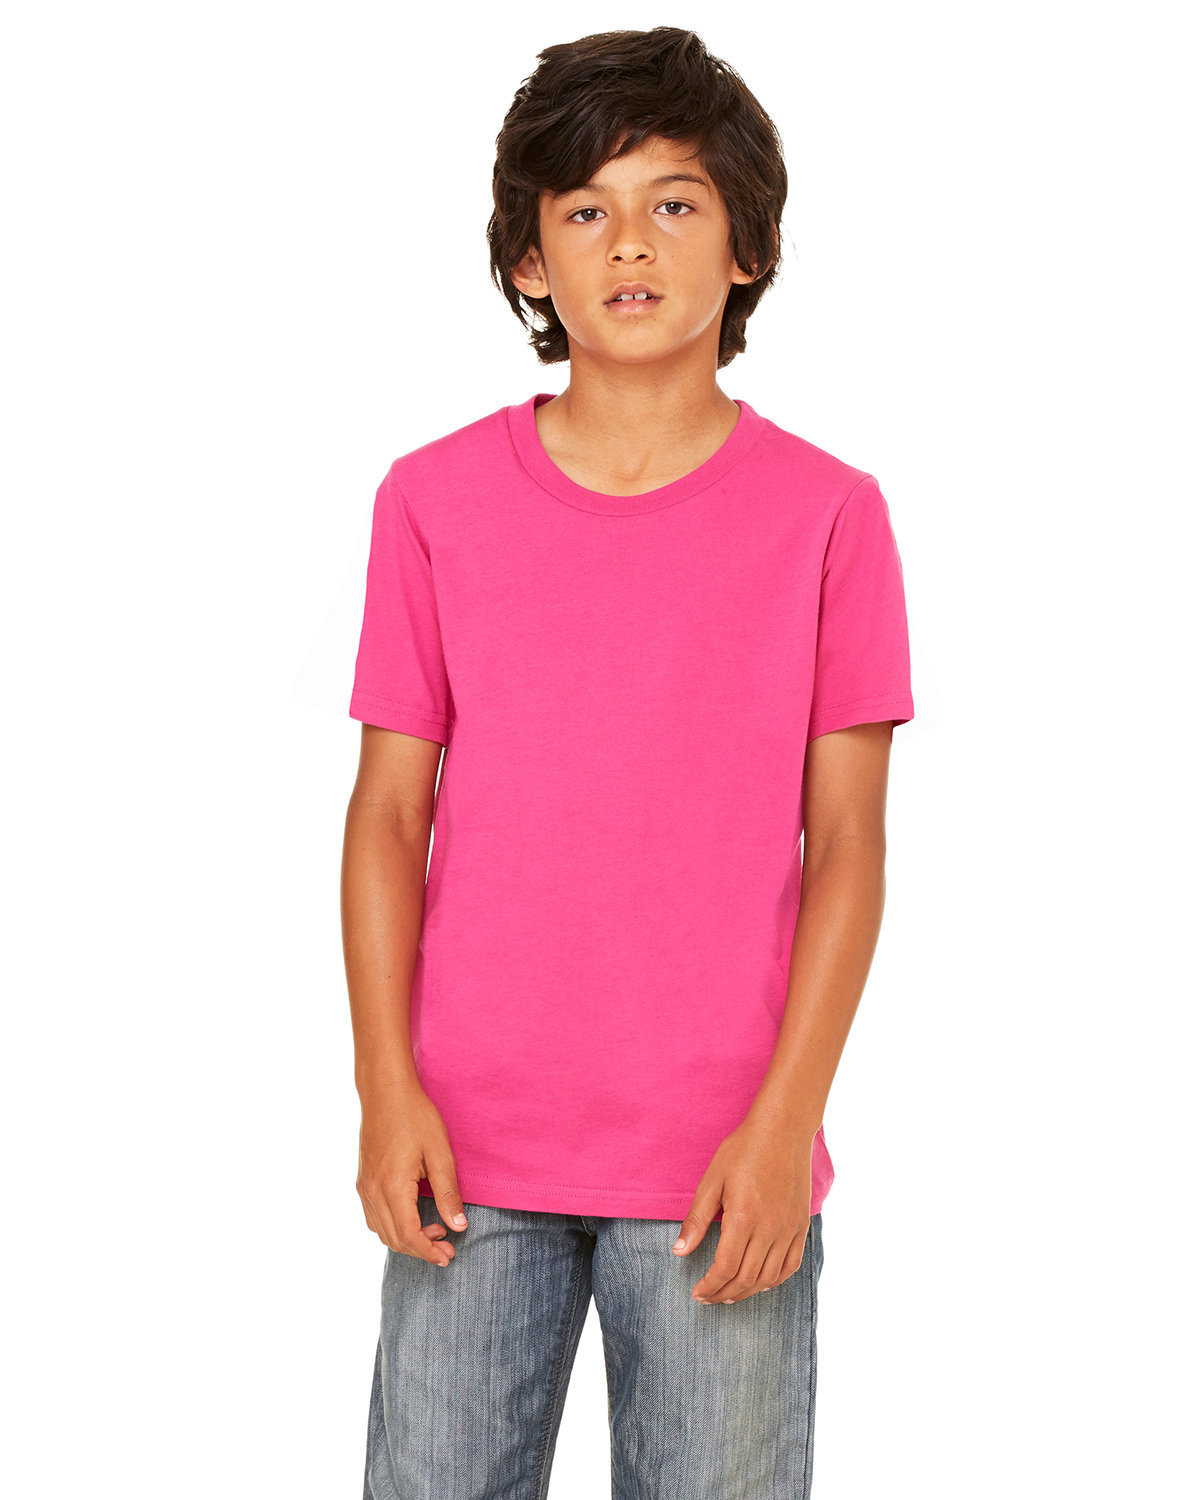 Bella + Canvas Youth Jersey T-Shirt BERRY